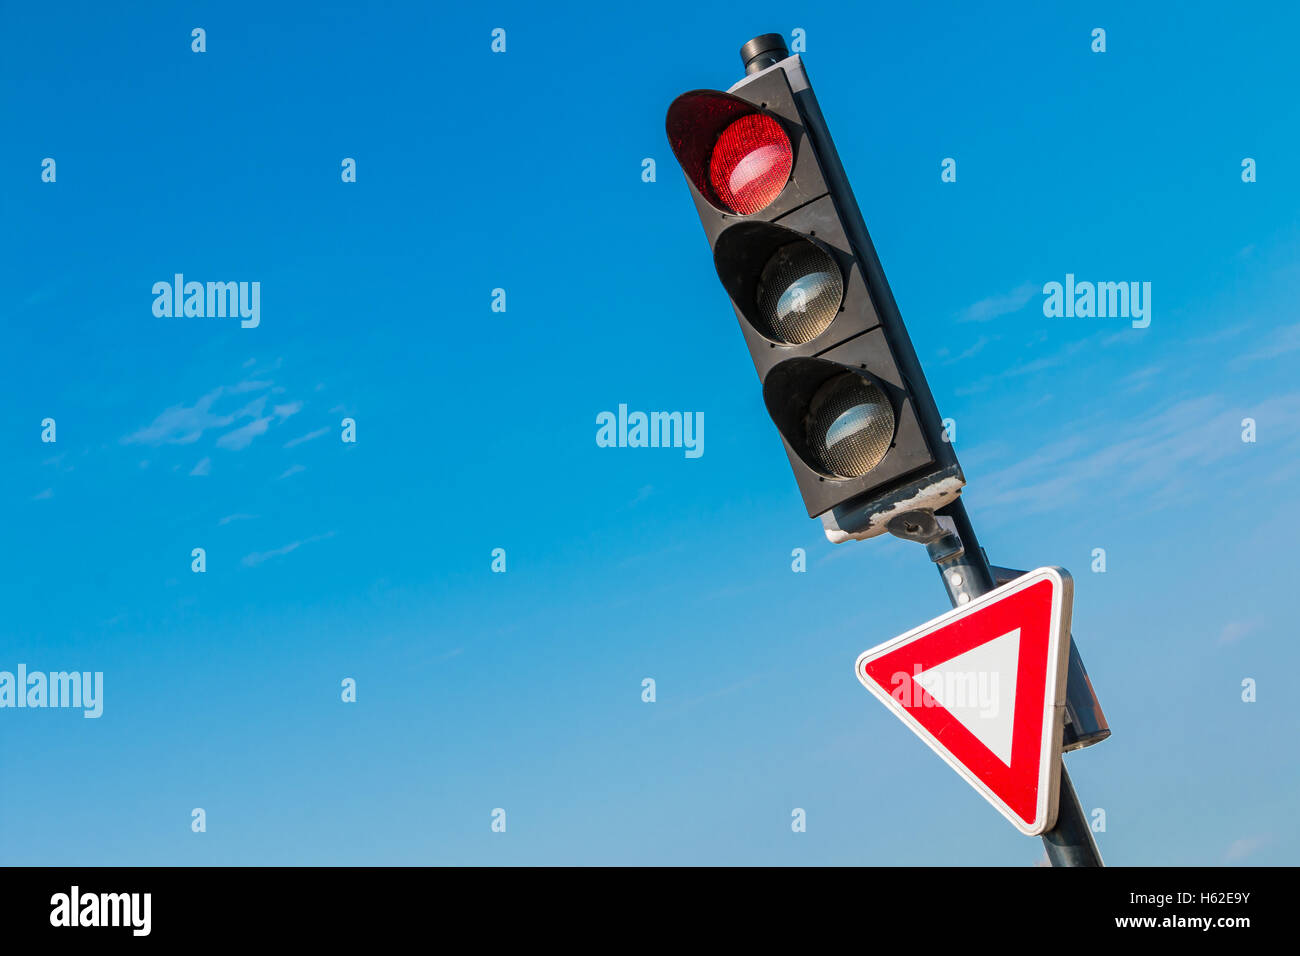 red traffic light with yield sign on blue sky - Stock Image